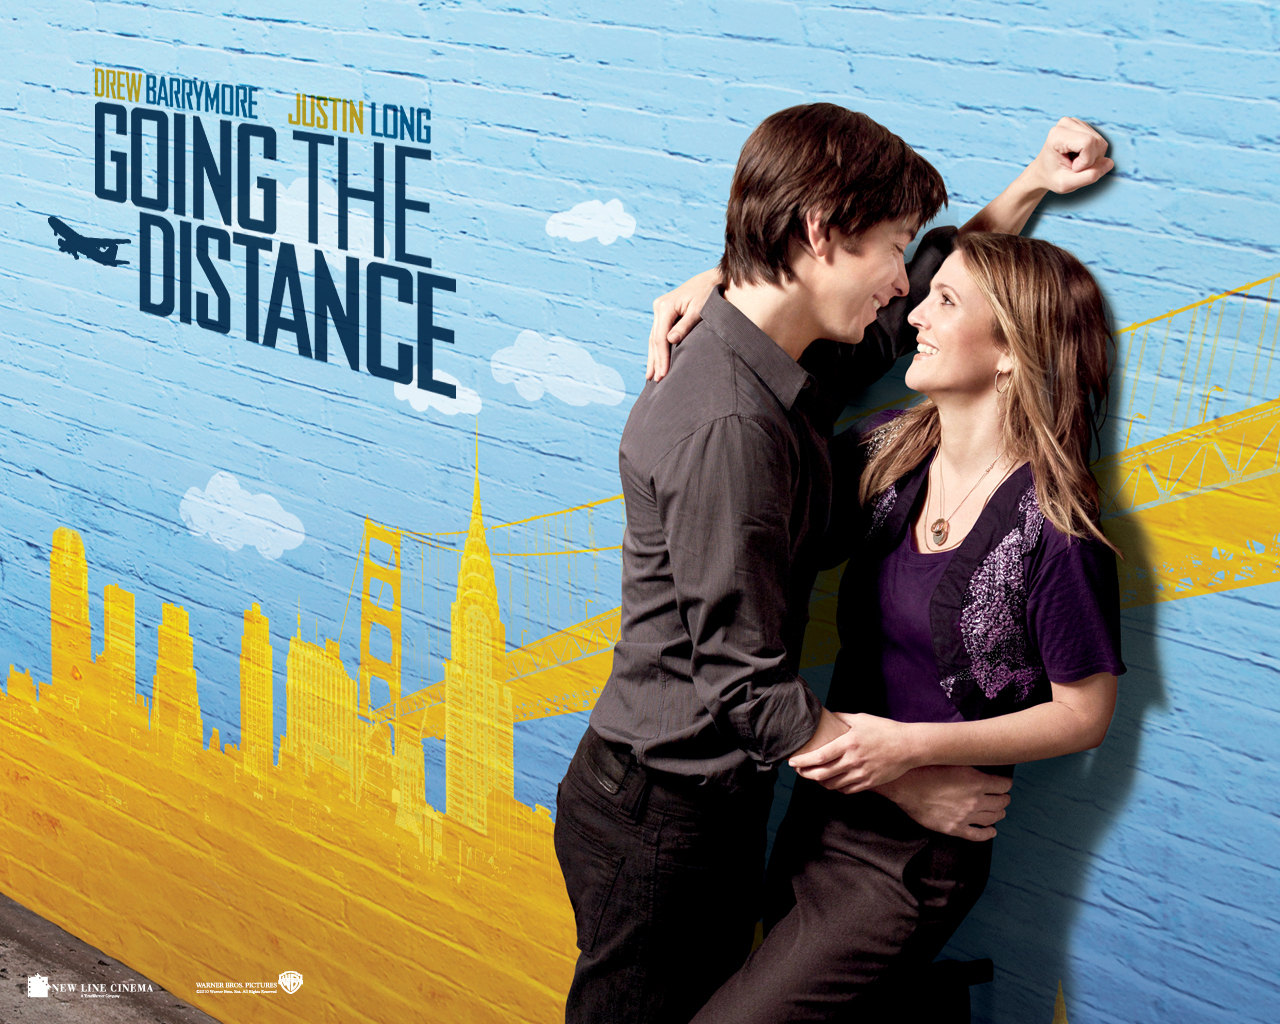 comedy Love Wallpaper : Romantic comedy images Going the Distance HD wallpaper and background photos (15130989)